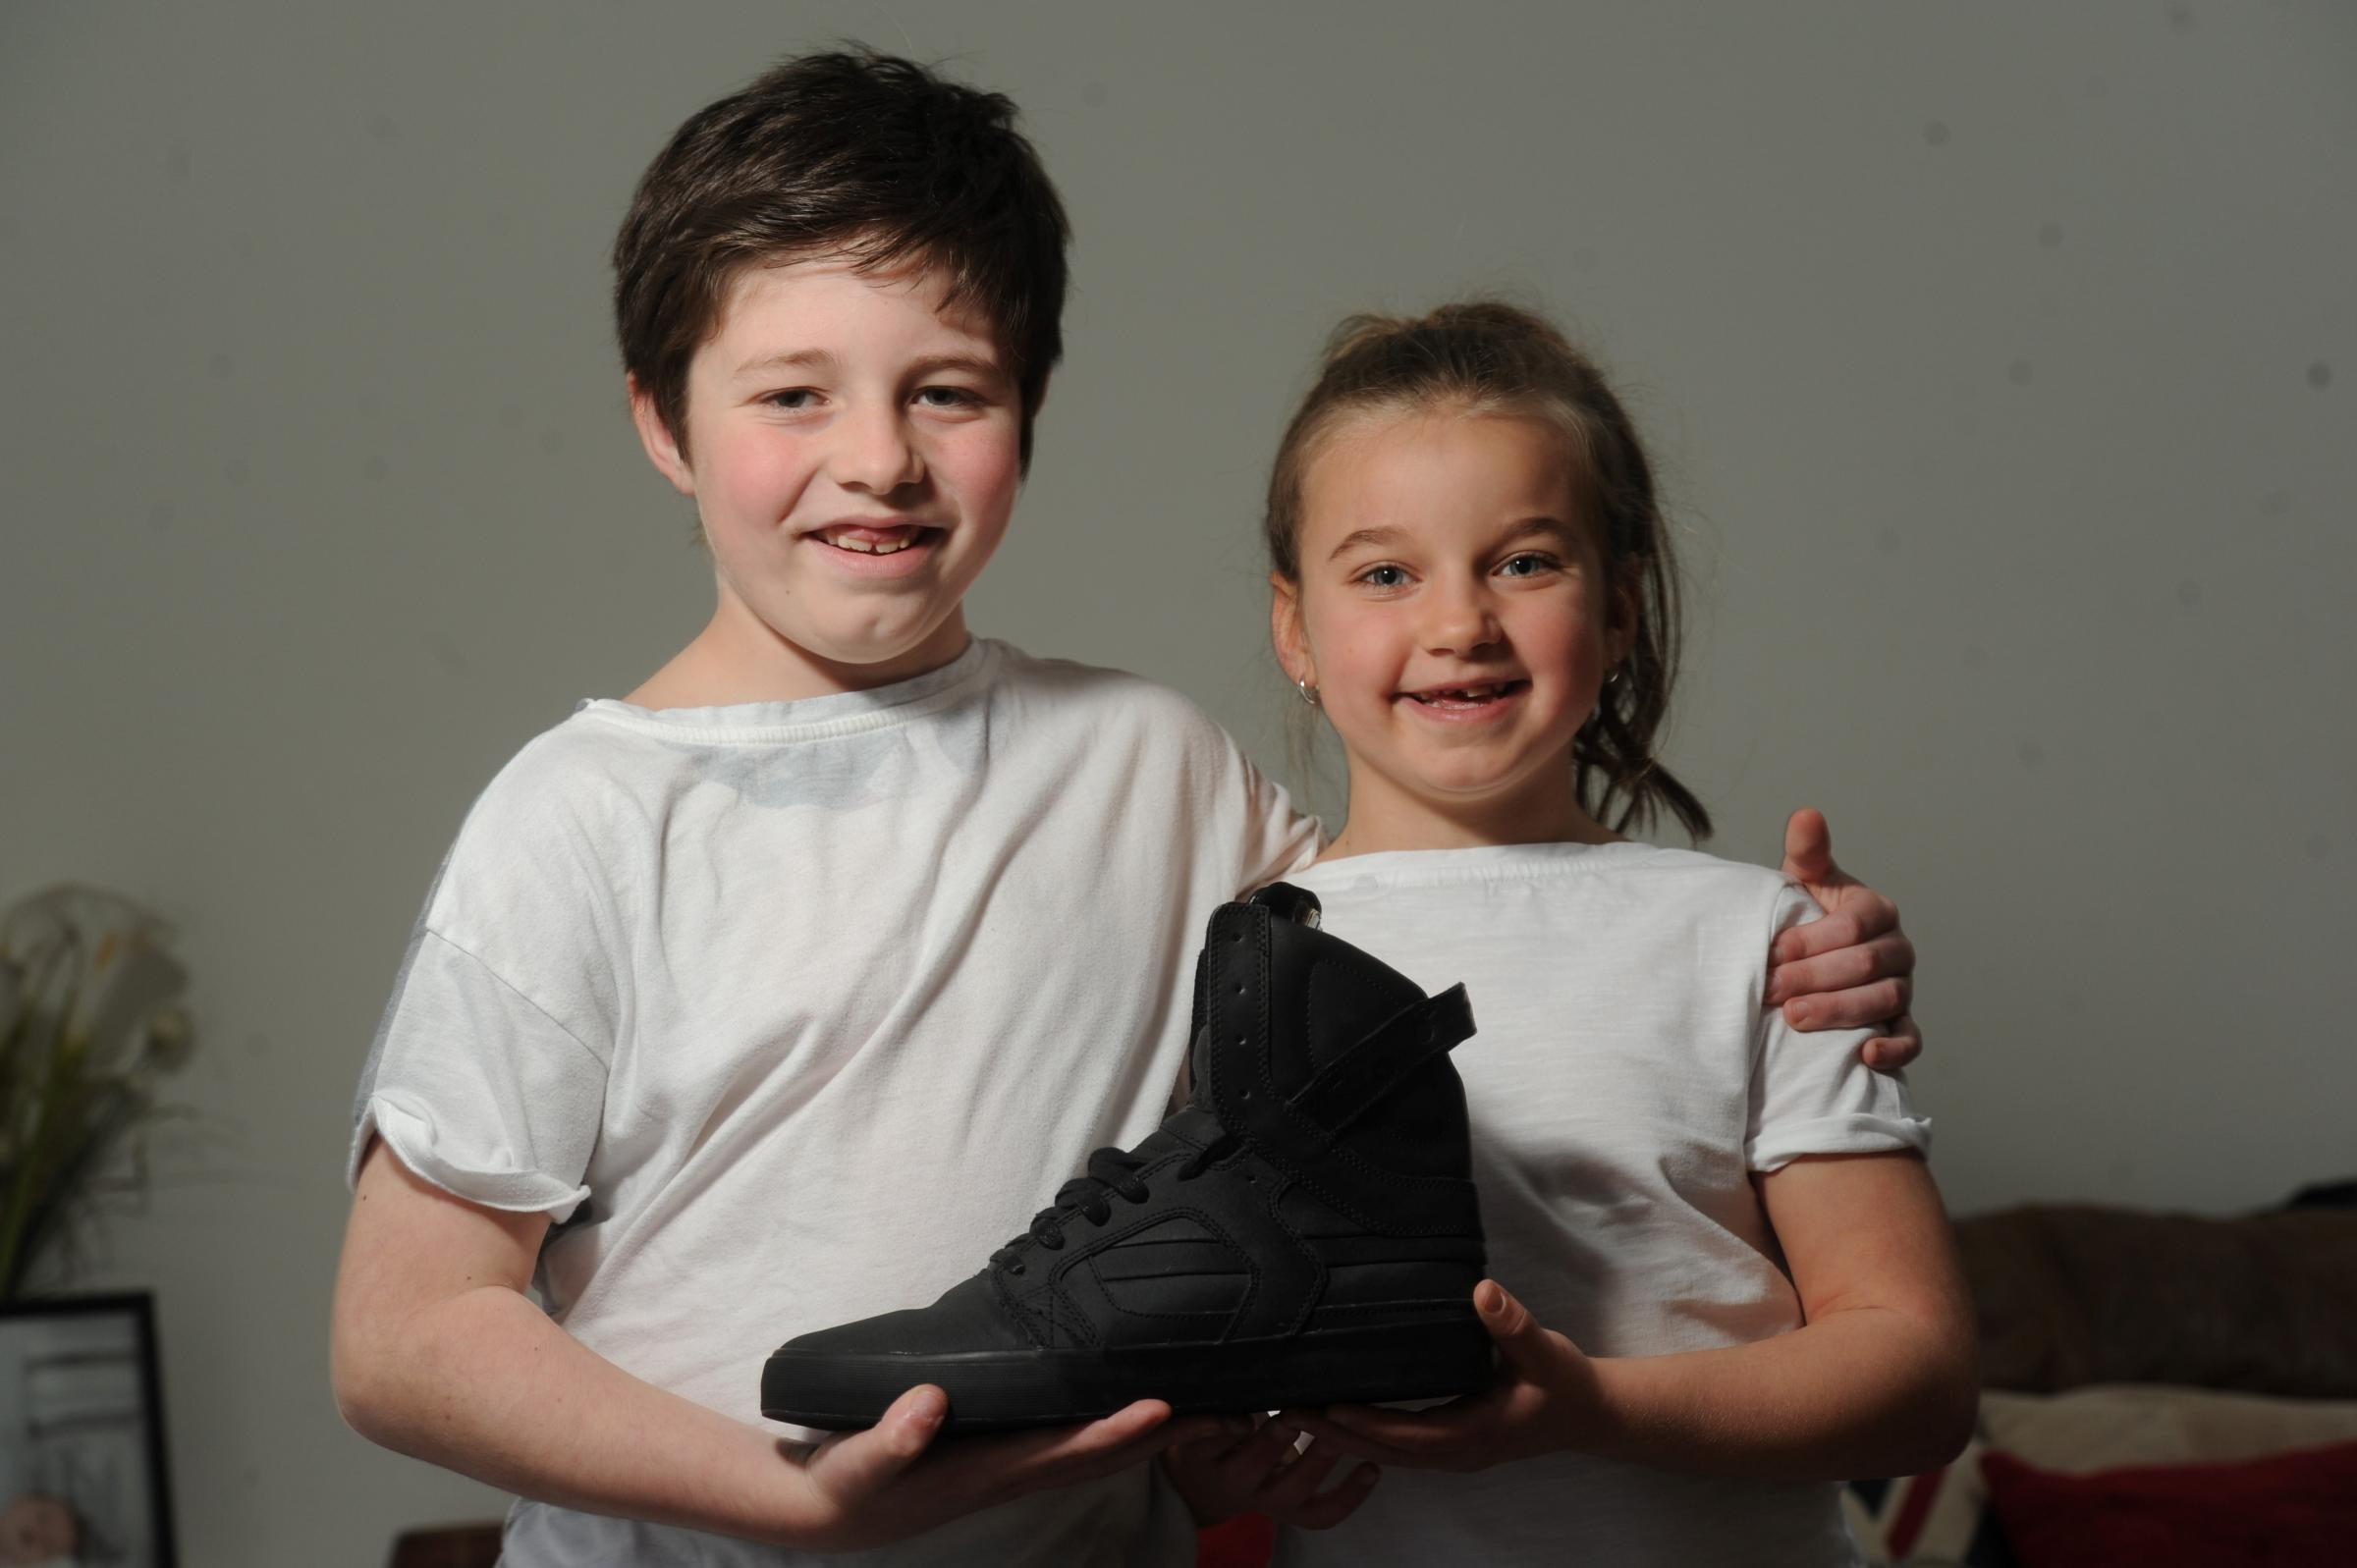 More bids for Cwmbran pupils' Justin Bieber shoe auction